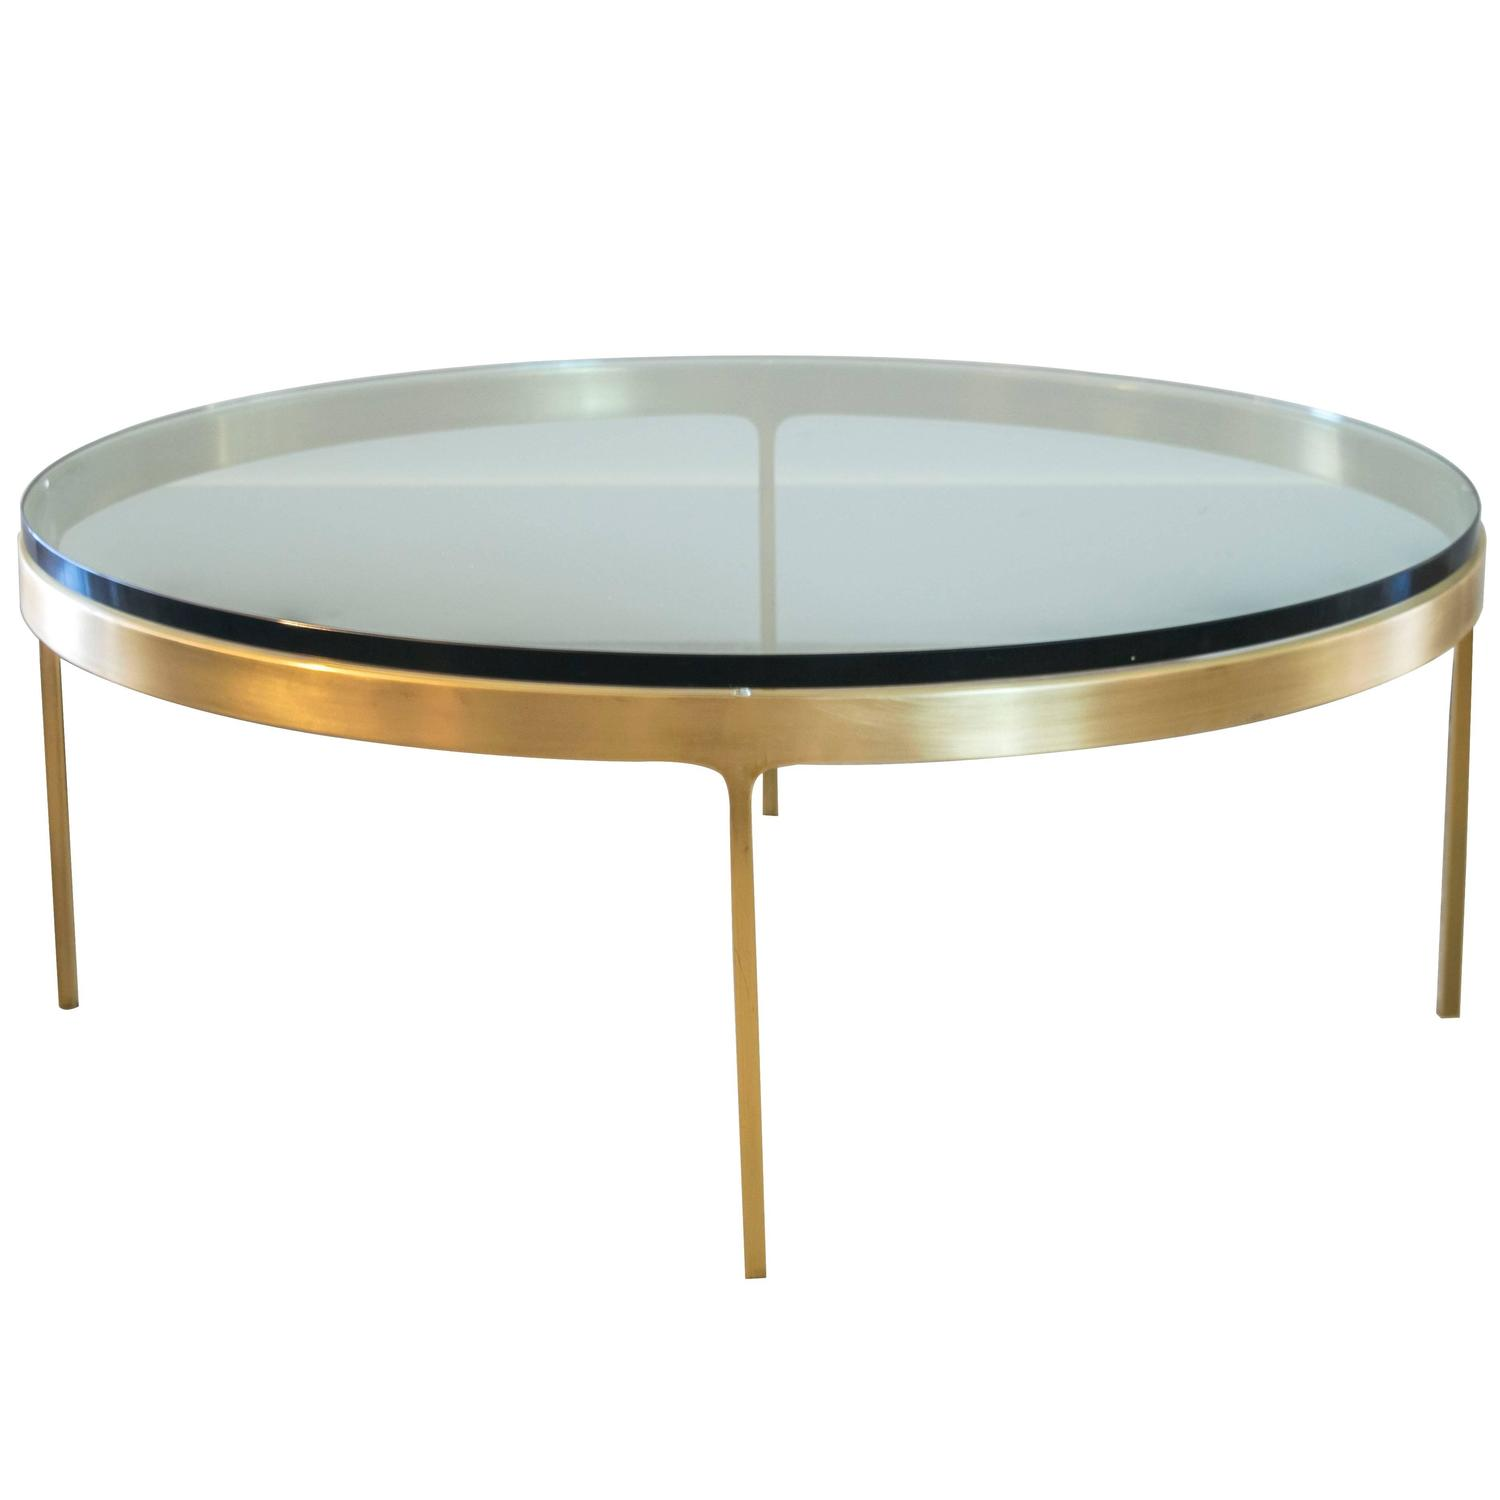 Solid brass round coffee table by nicos zographos at 1stdibs Round coffee tables